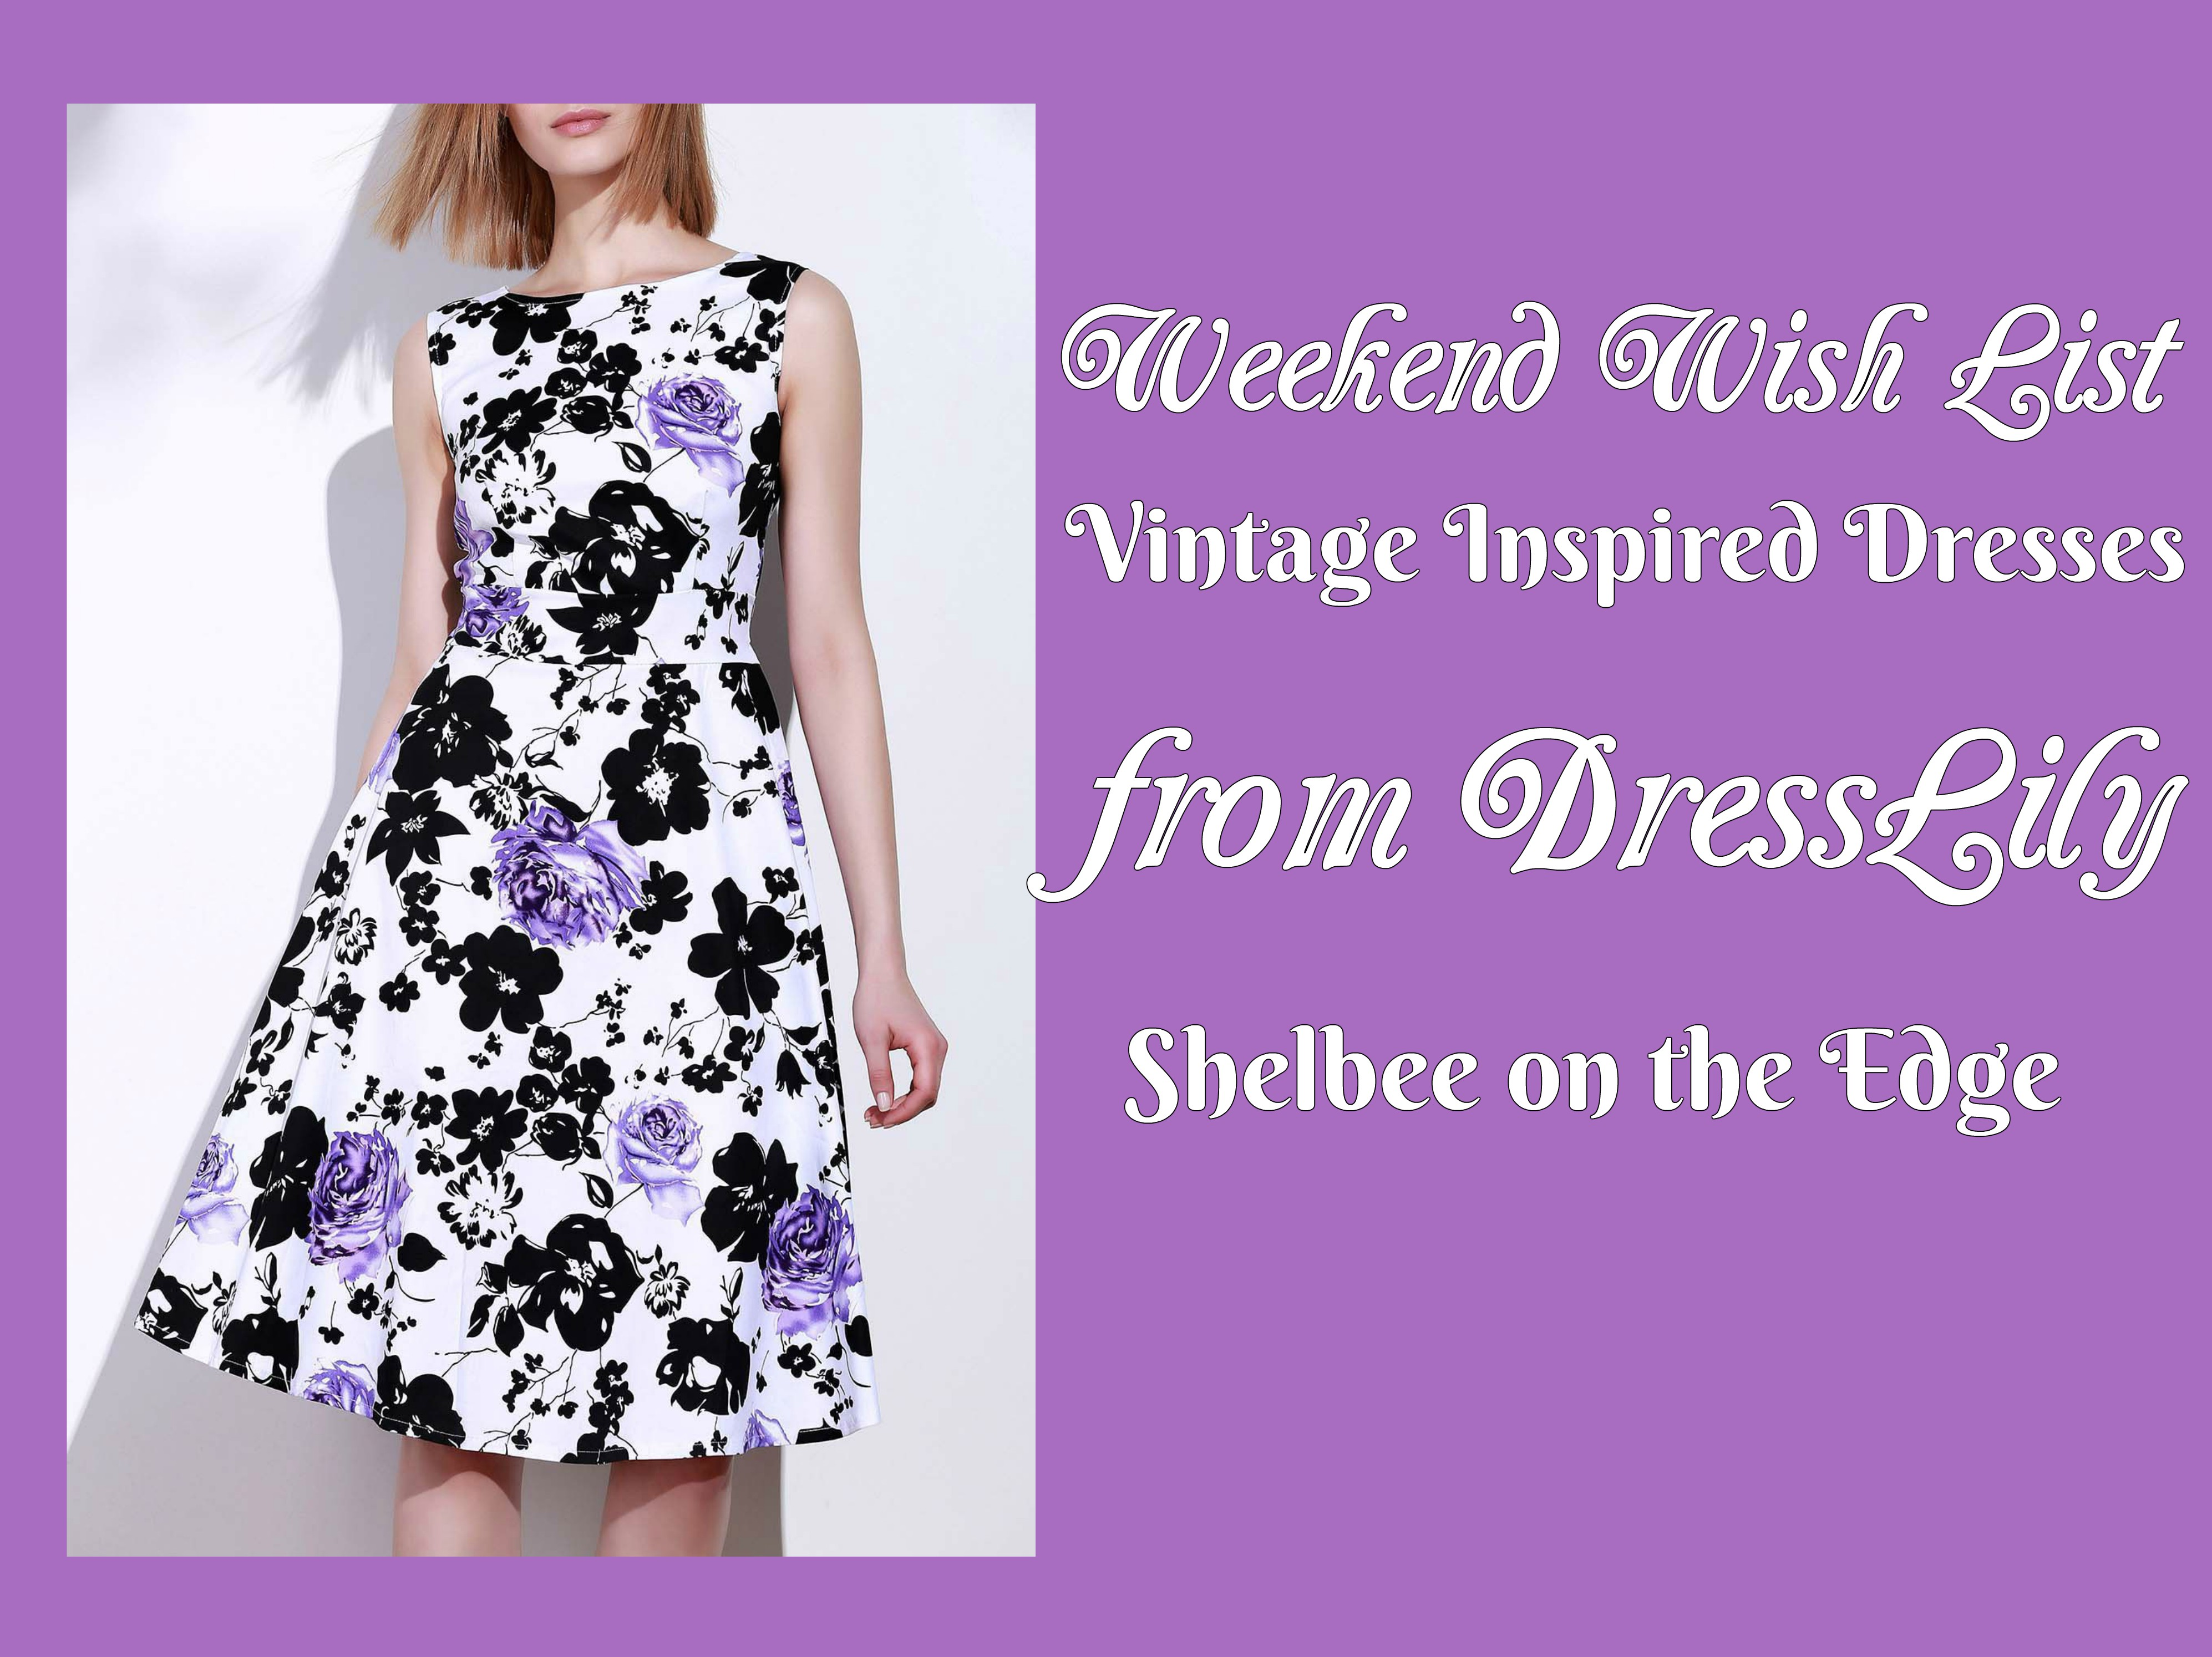 Weekend Wish List: Vintage Inspired Dresses from DressLily